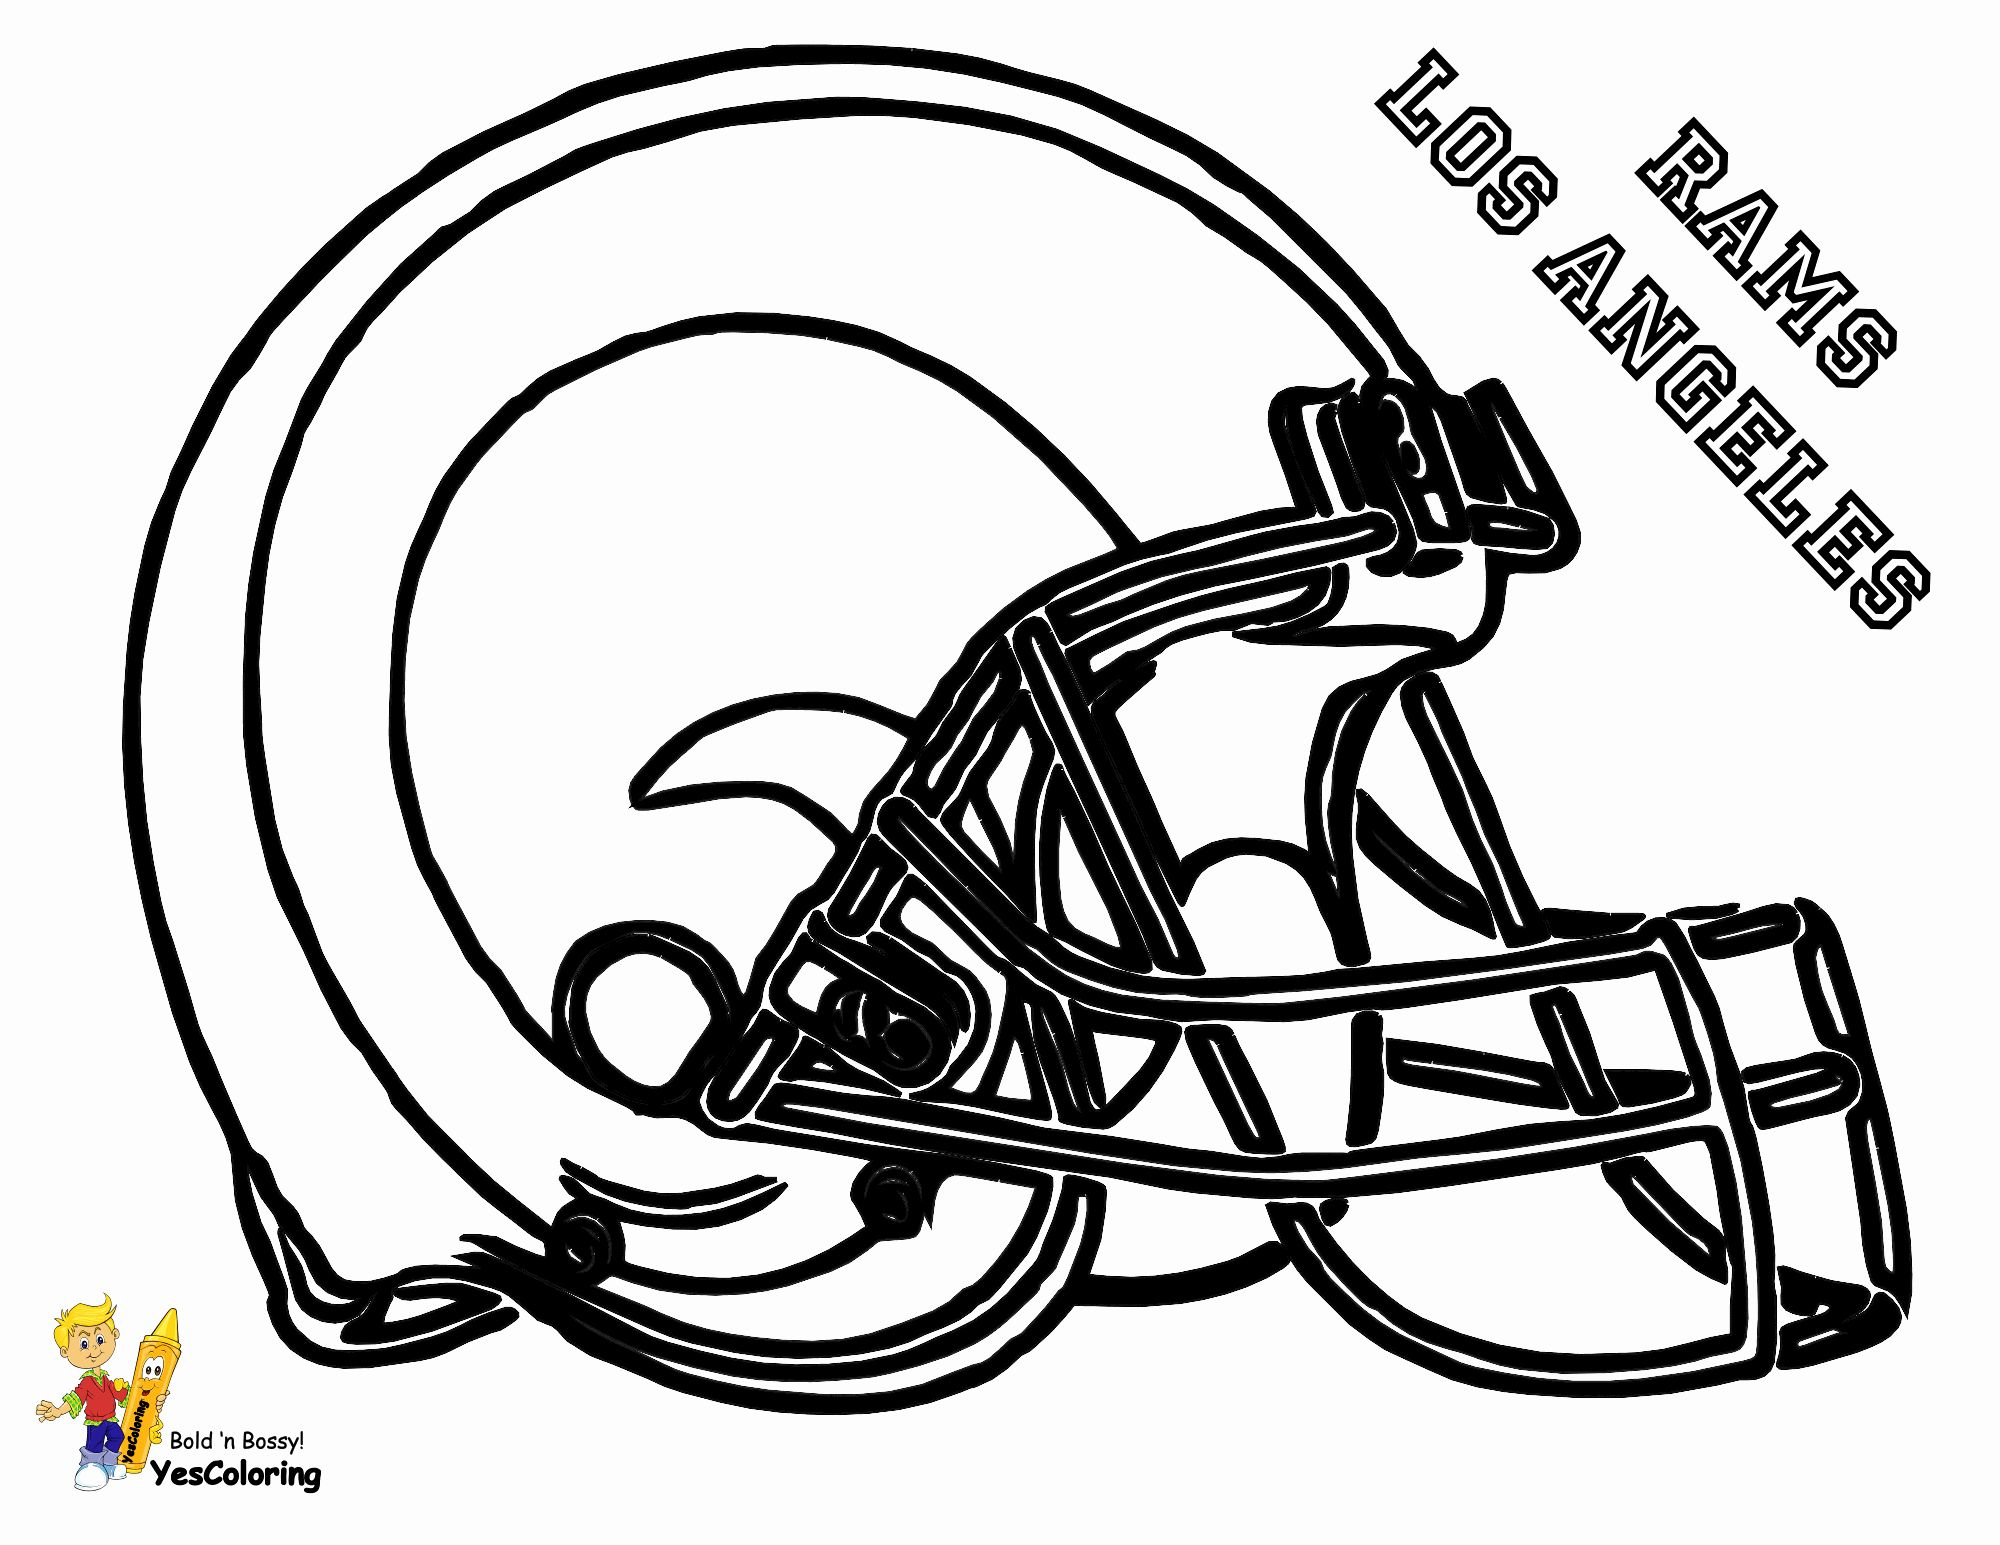 Arkansas Razorback Coloring Page Luxury Pro Football Helmet Coloring Page Nfl Football Football Coloring Pages Dog Coloring Page New Year Coloring Pages